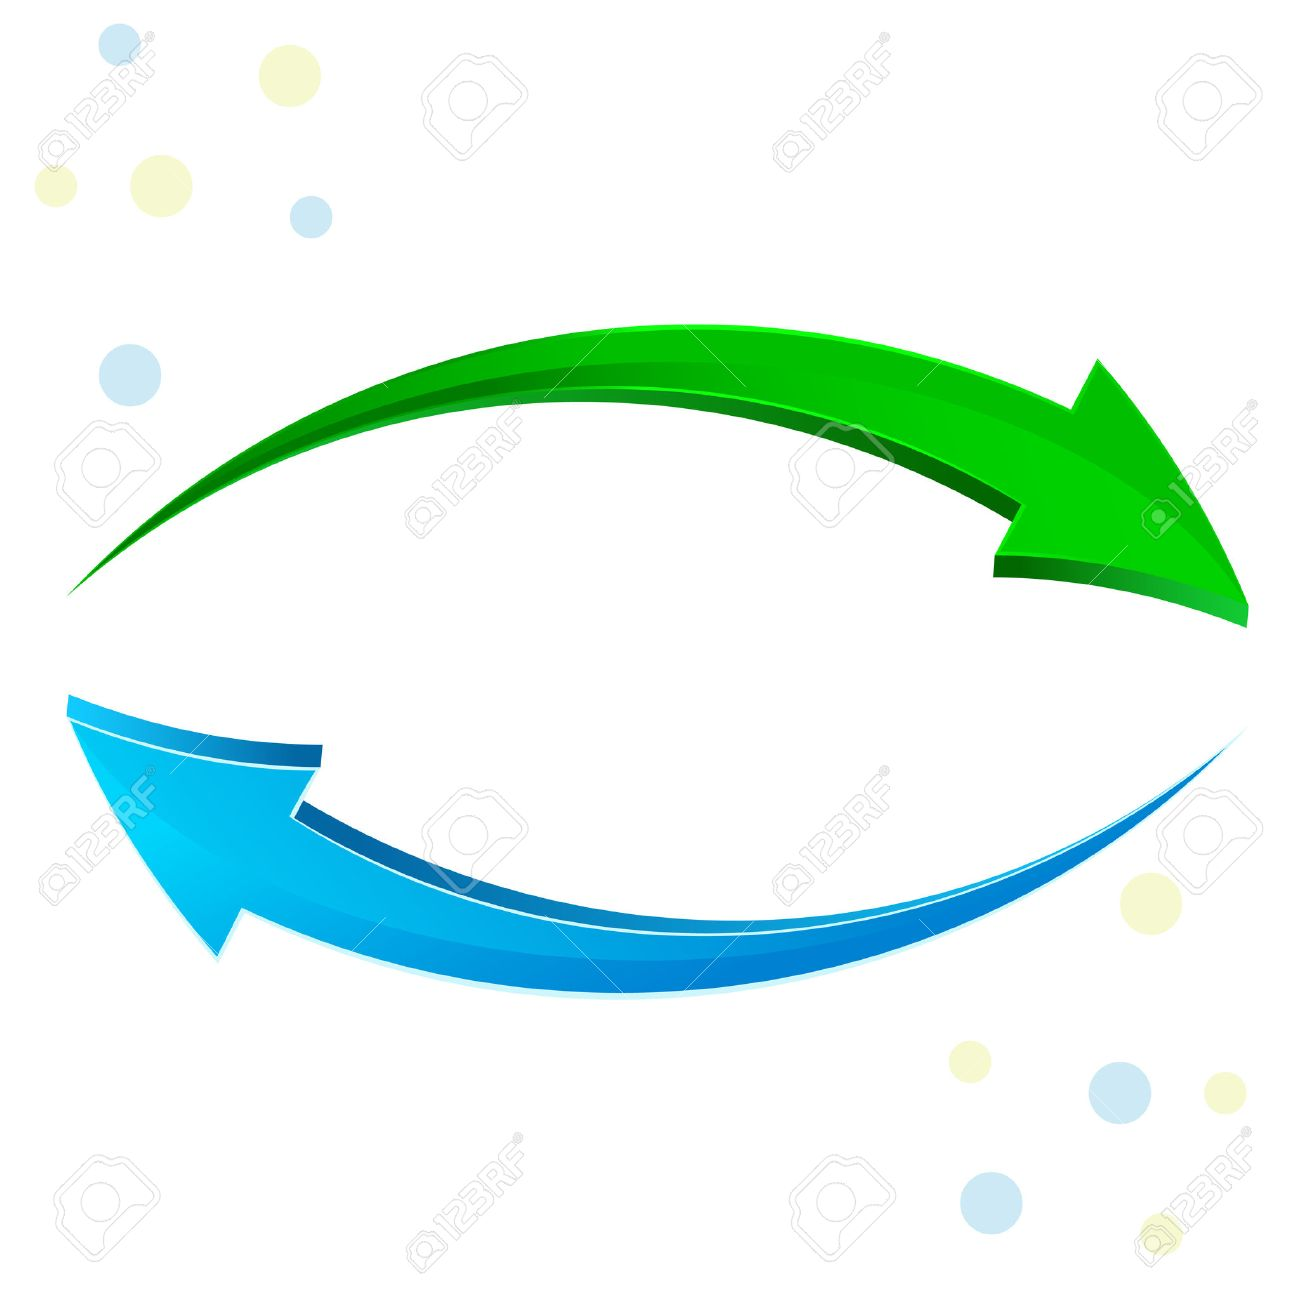 3d glossy refresh icon, green and blue arrows isolated on white - 40979290